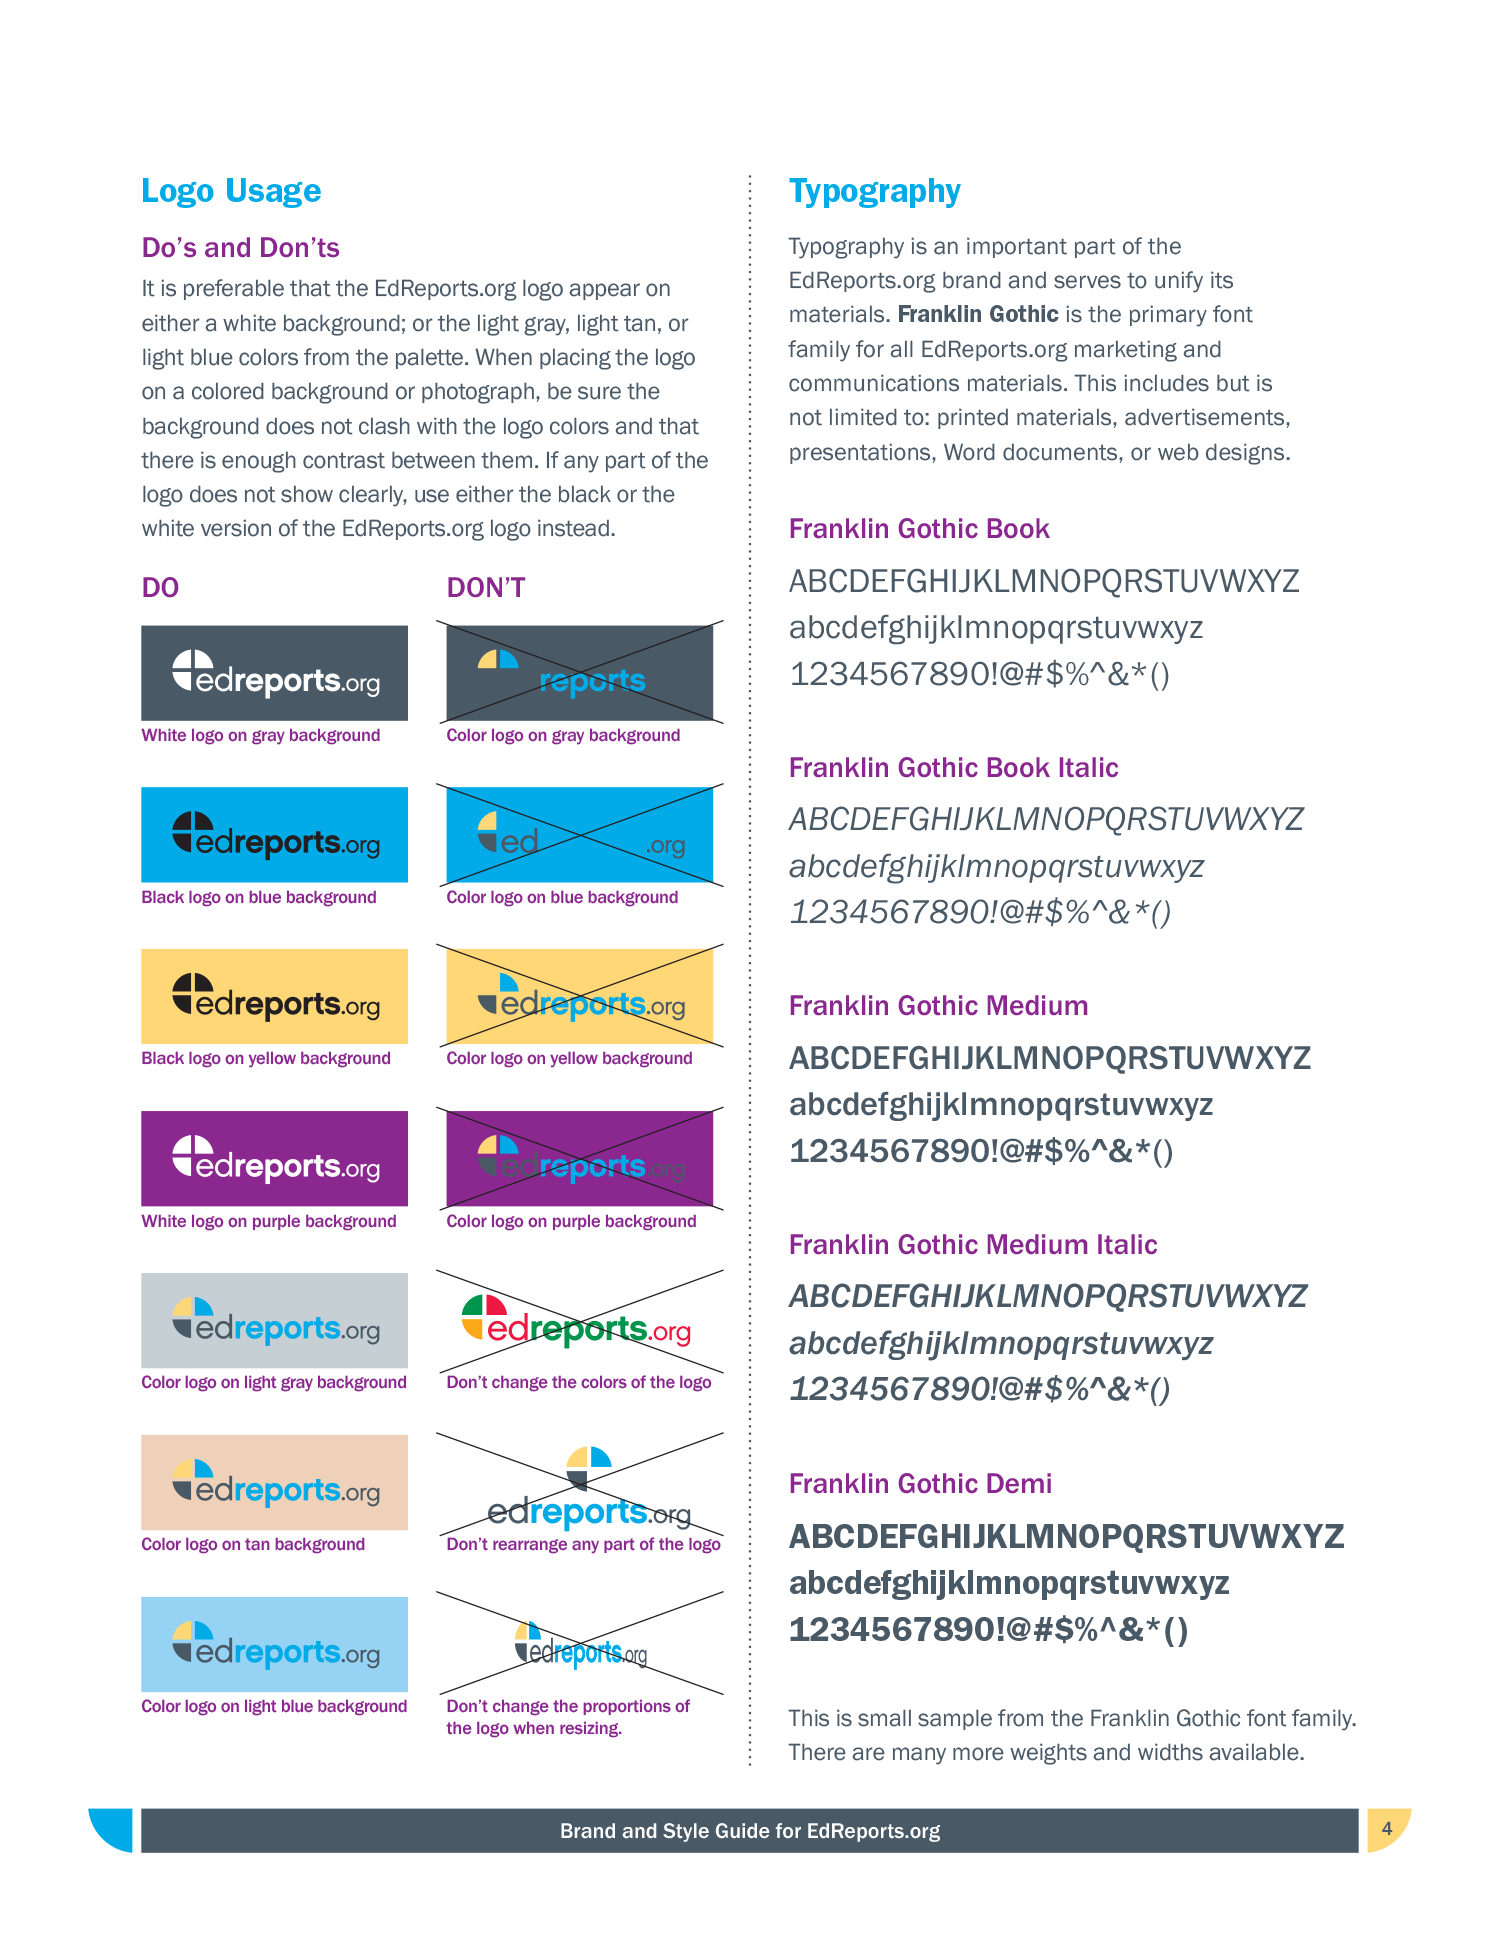 edreports_styleguide-5.png